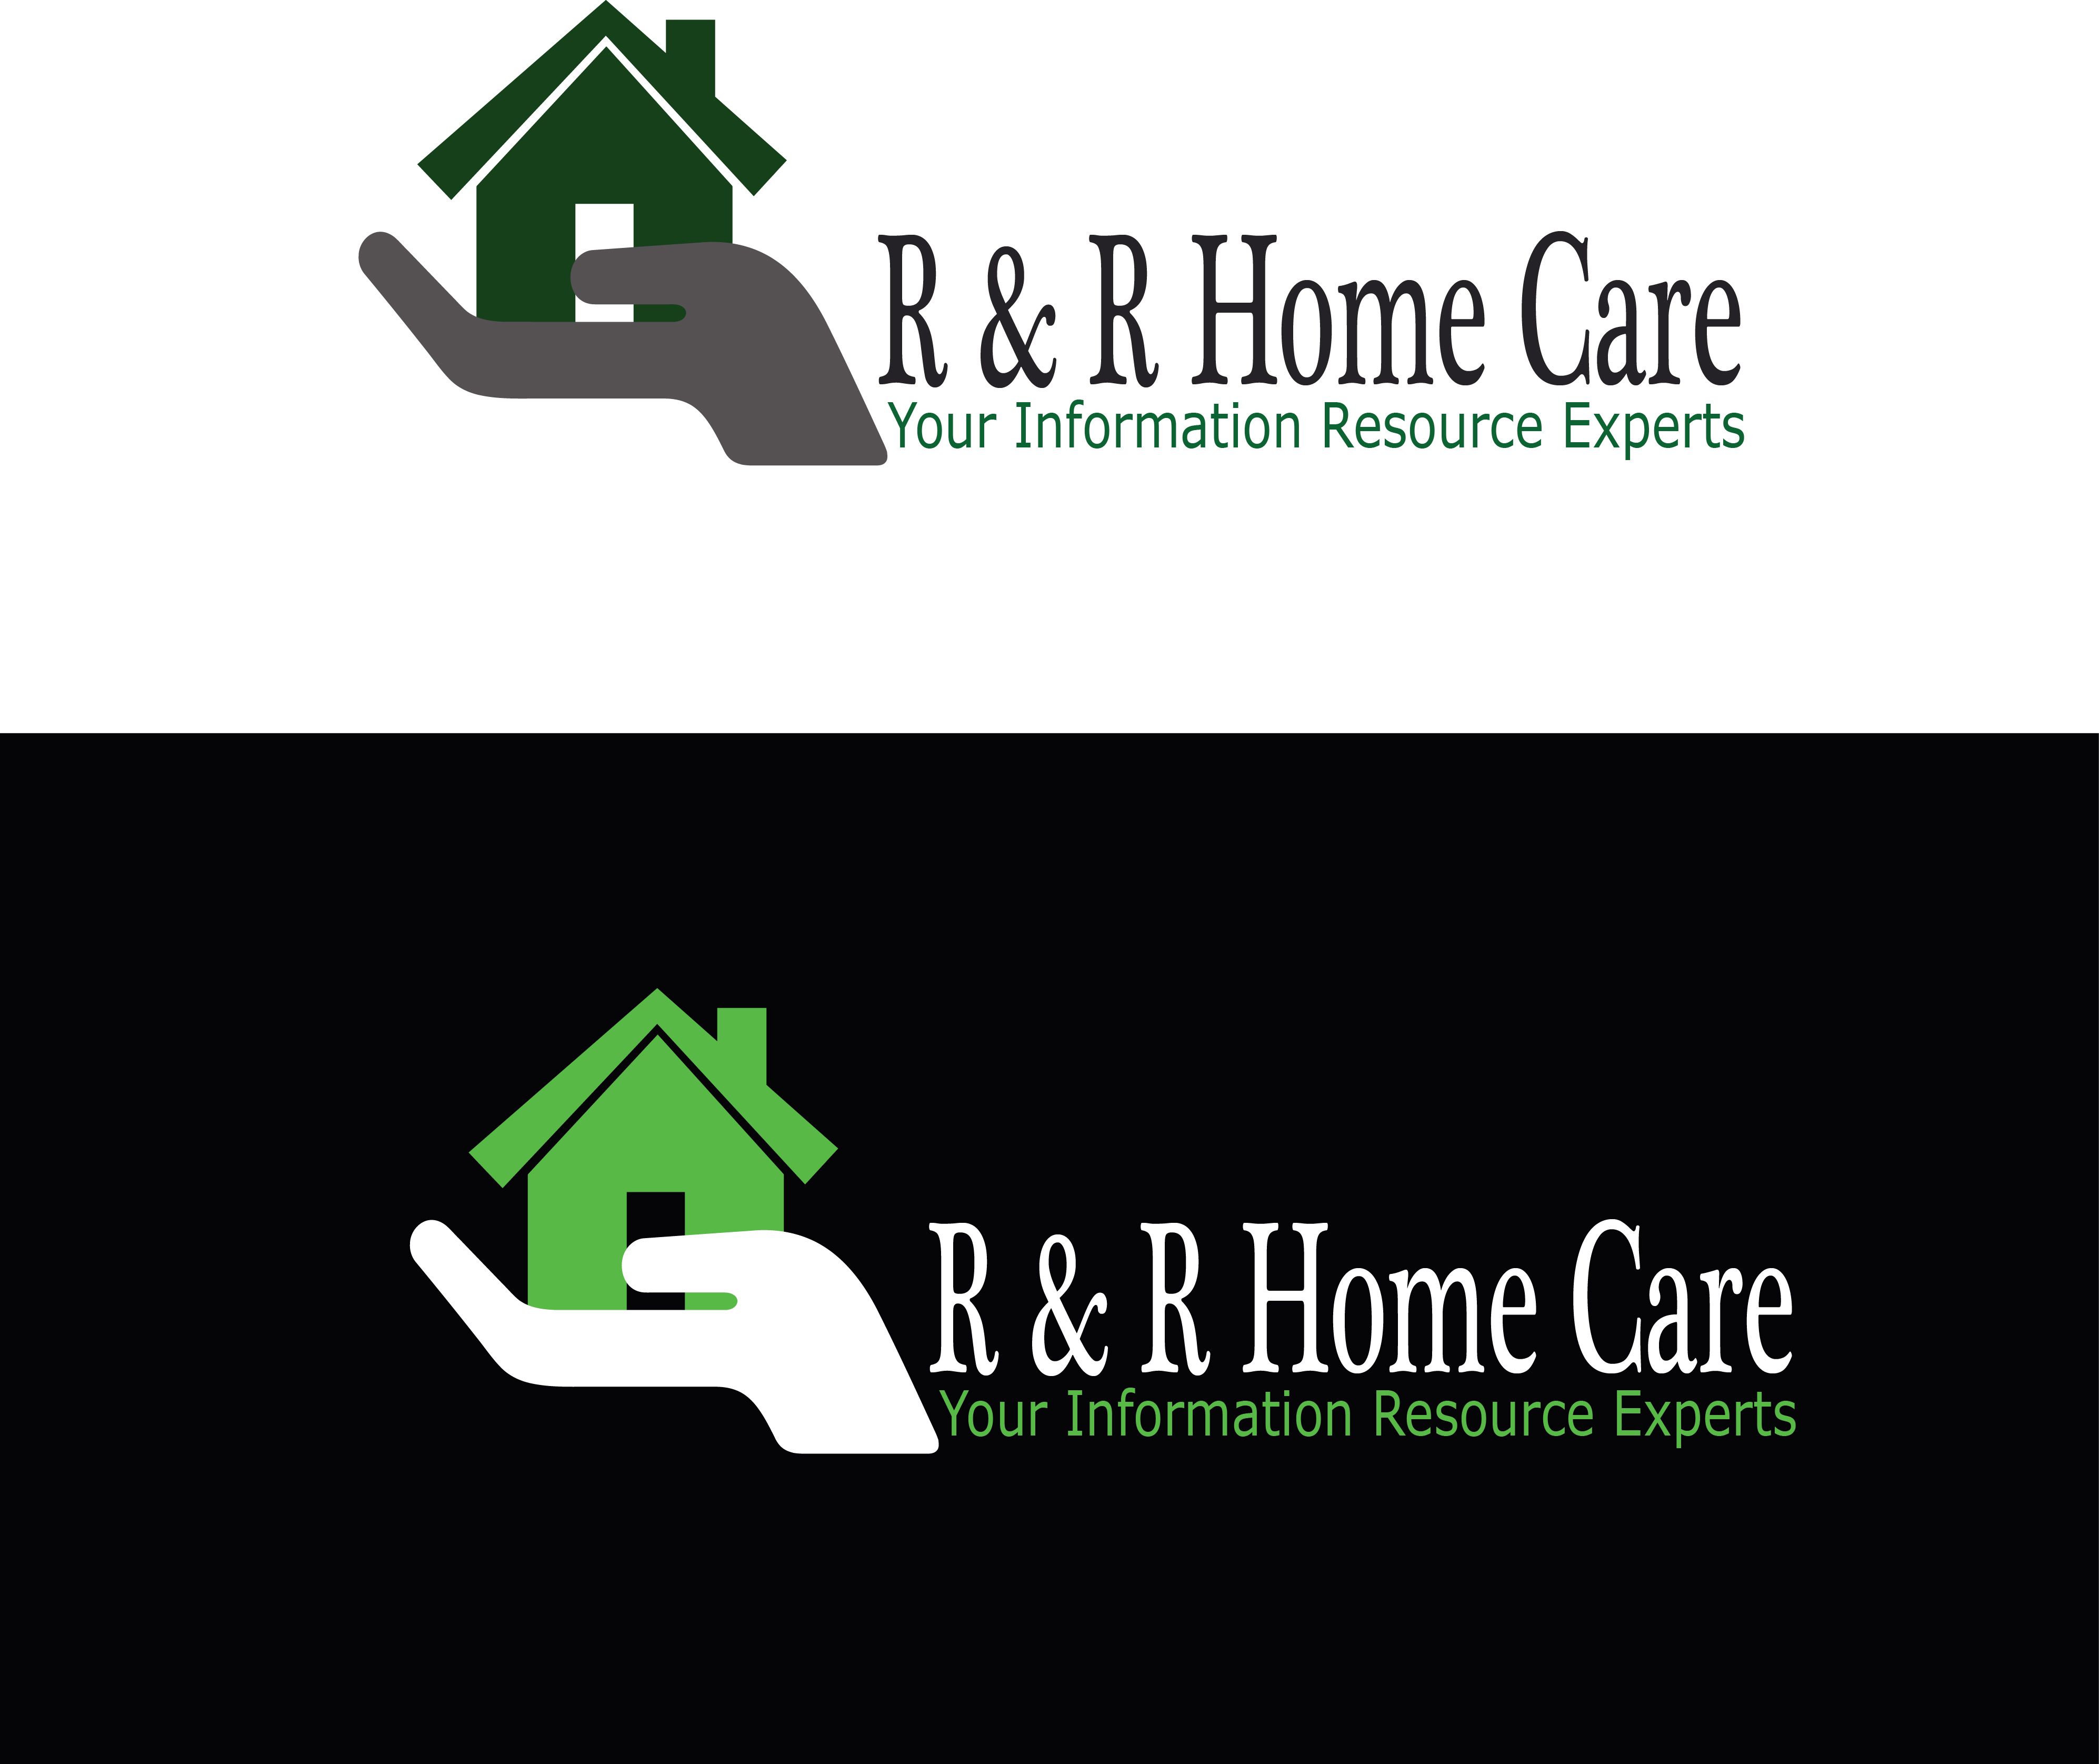 Logo Design by Faisal Javed - Entry No. 131 in the Logo Design Contest Imaginative Logo Design for RNR HomeCare.